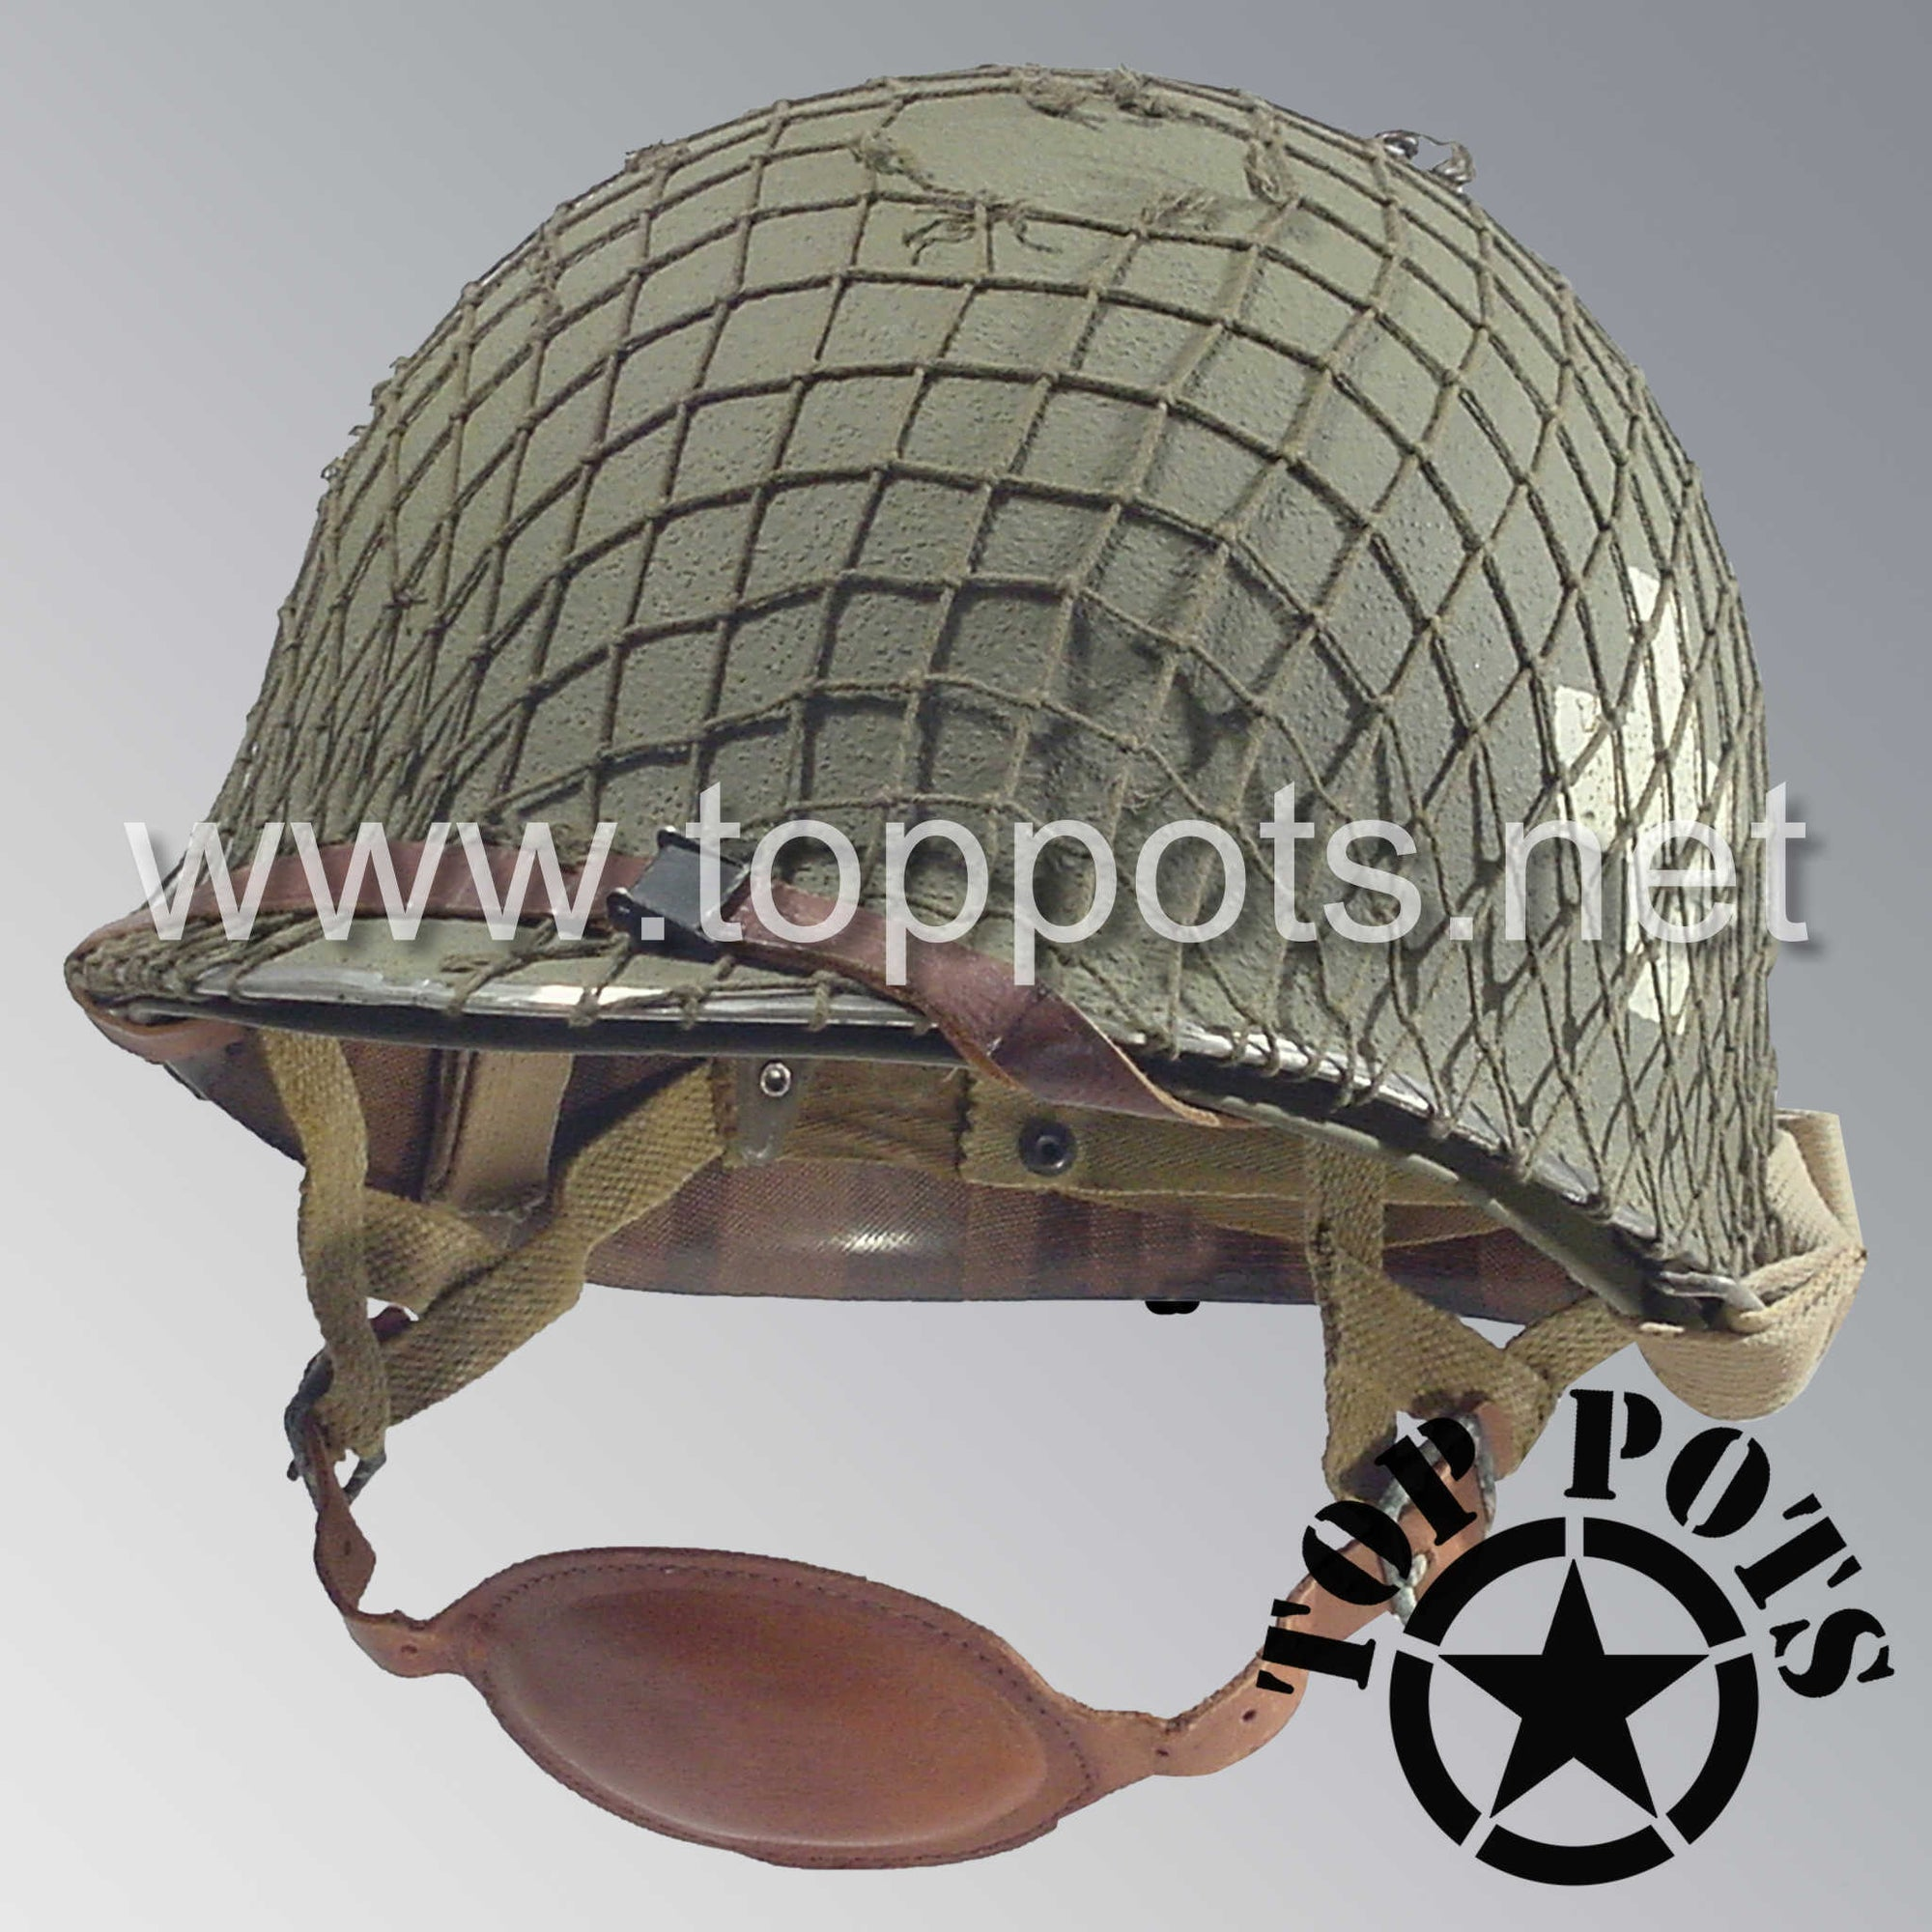 Image 1 of WWII US Army Restored Original M1C Paratrooper Airborne Helmet Swivel Bale Shell and Liner with 101st 326th Airborne Medical Company NCO Emblem and Net